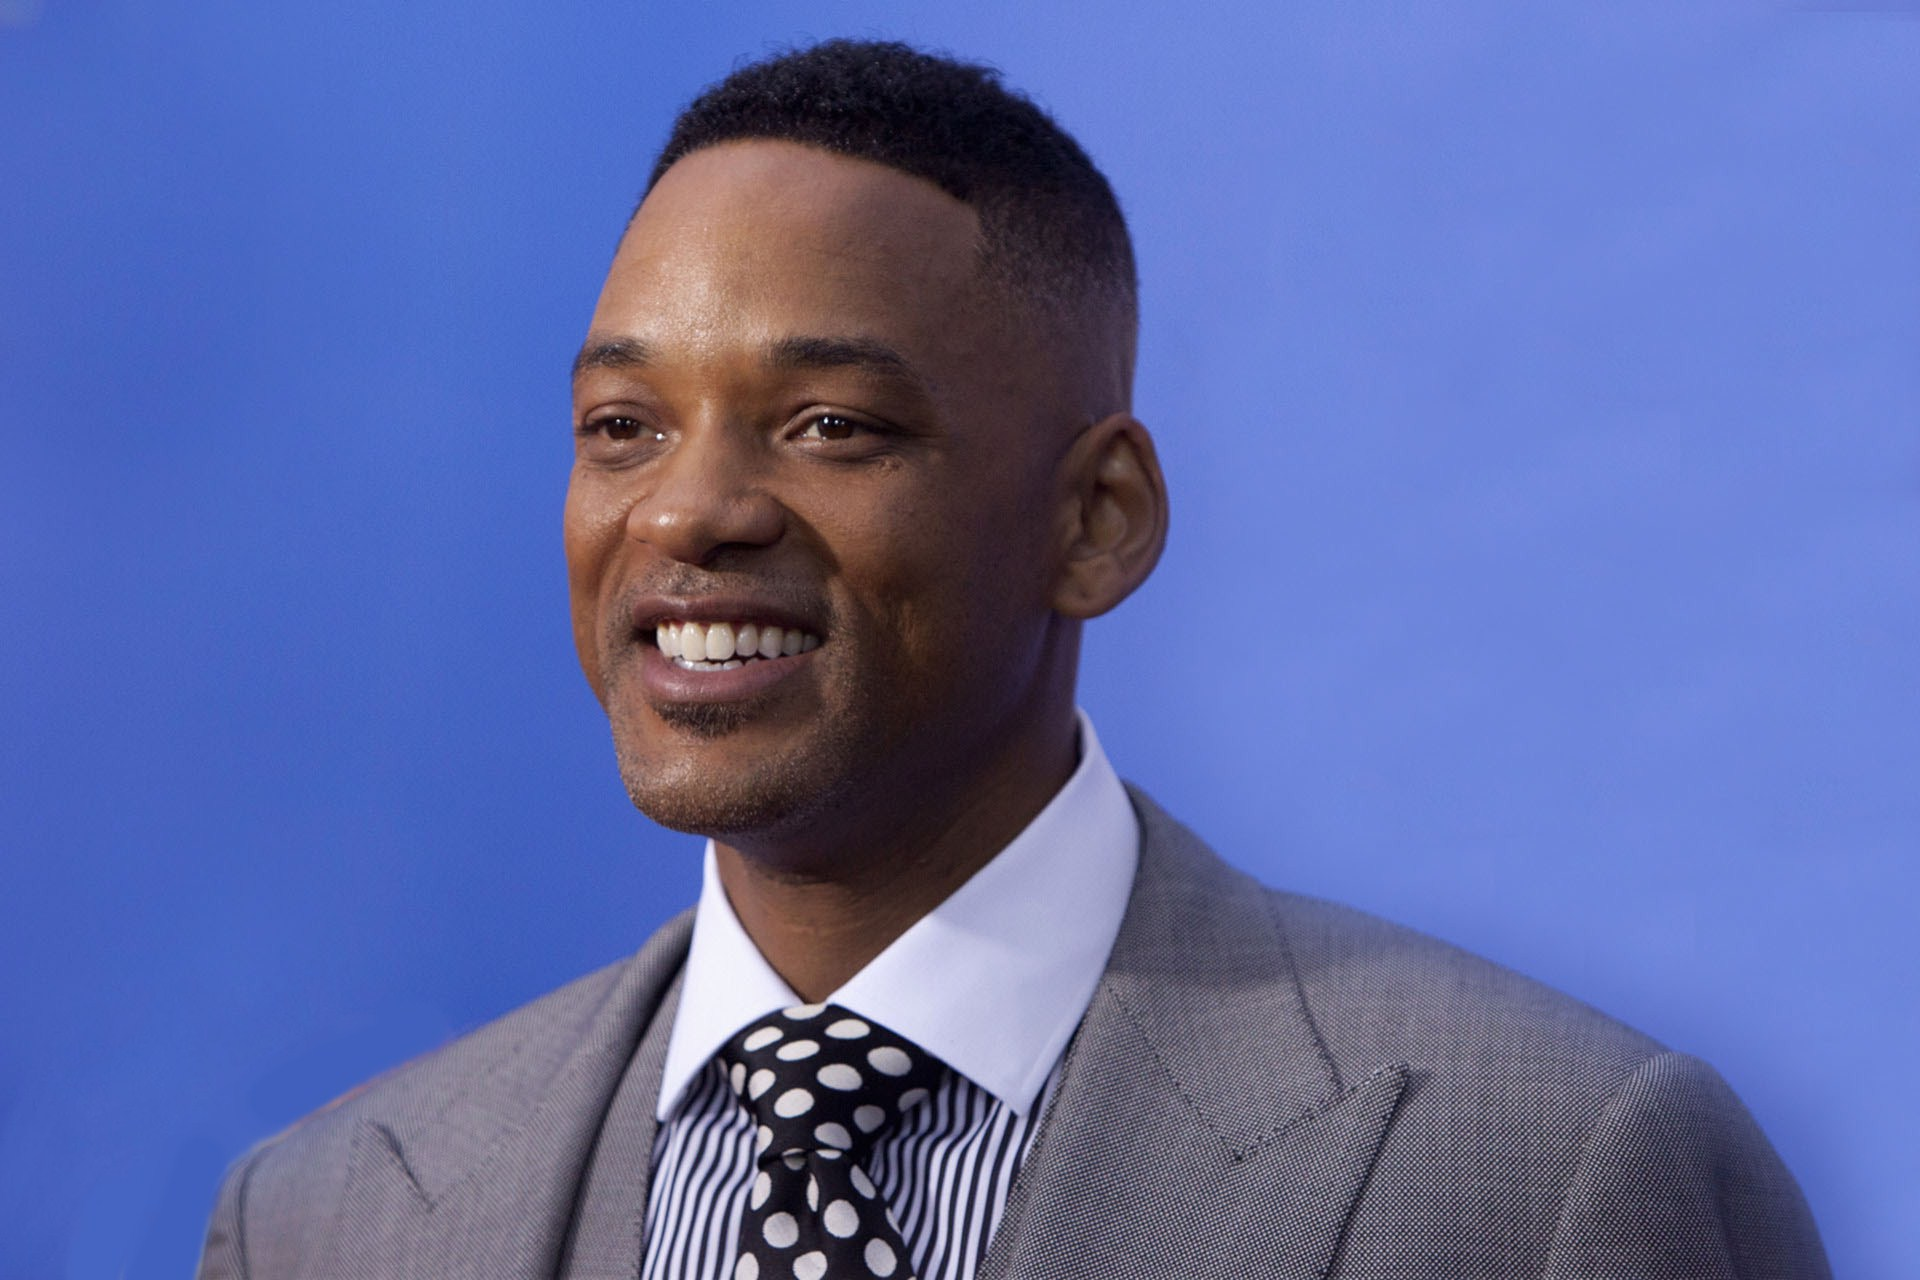 Actor Will Smith smile Wallpapers